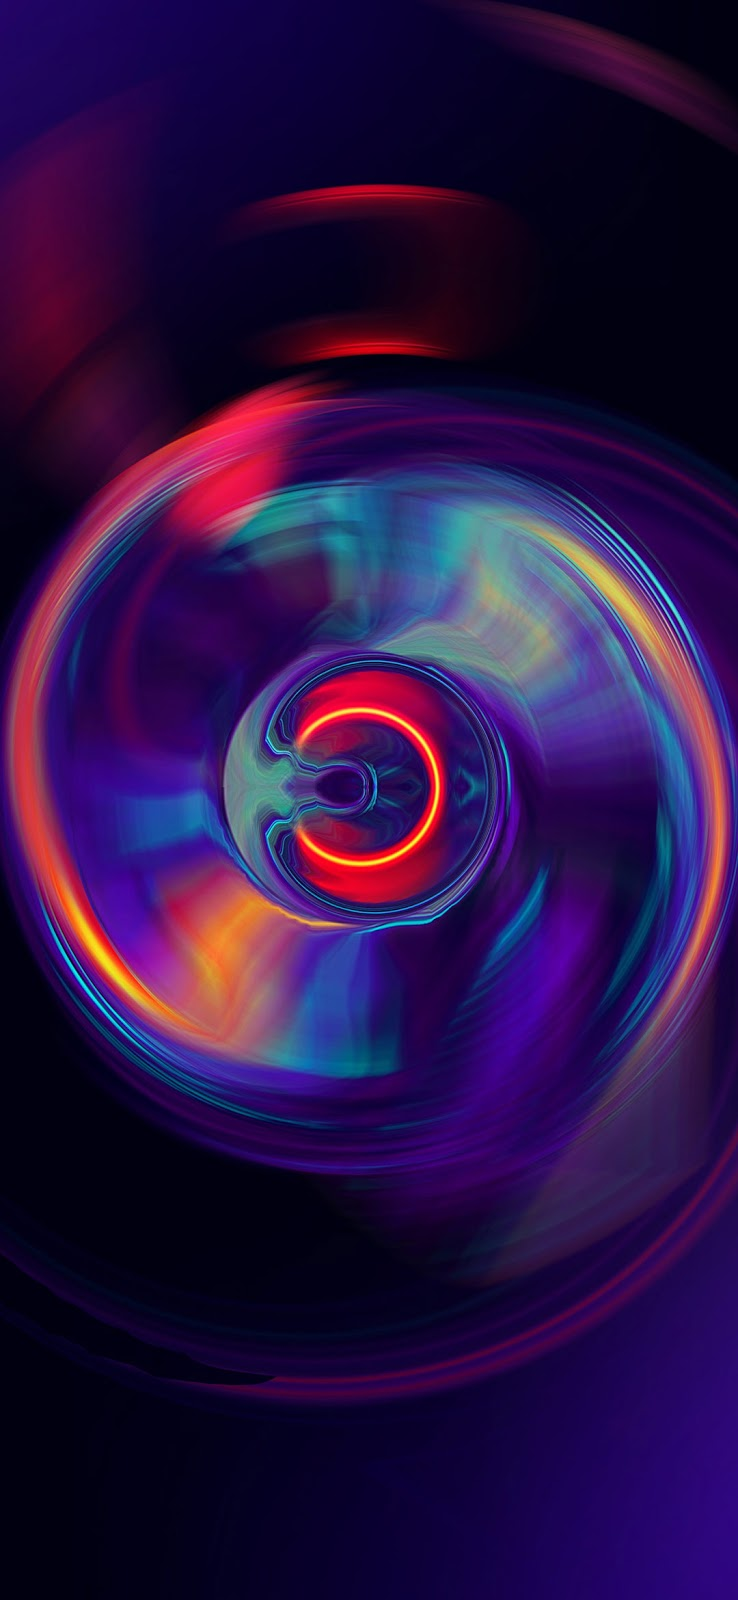 Colorful abstract light wheel